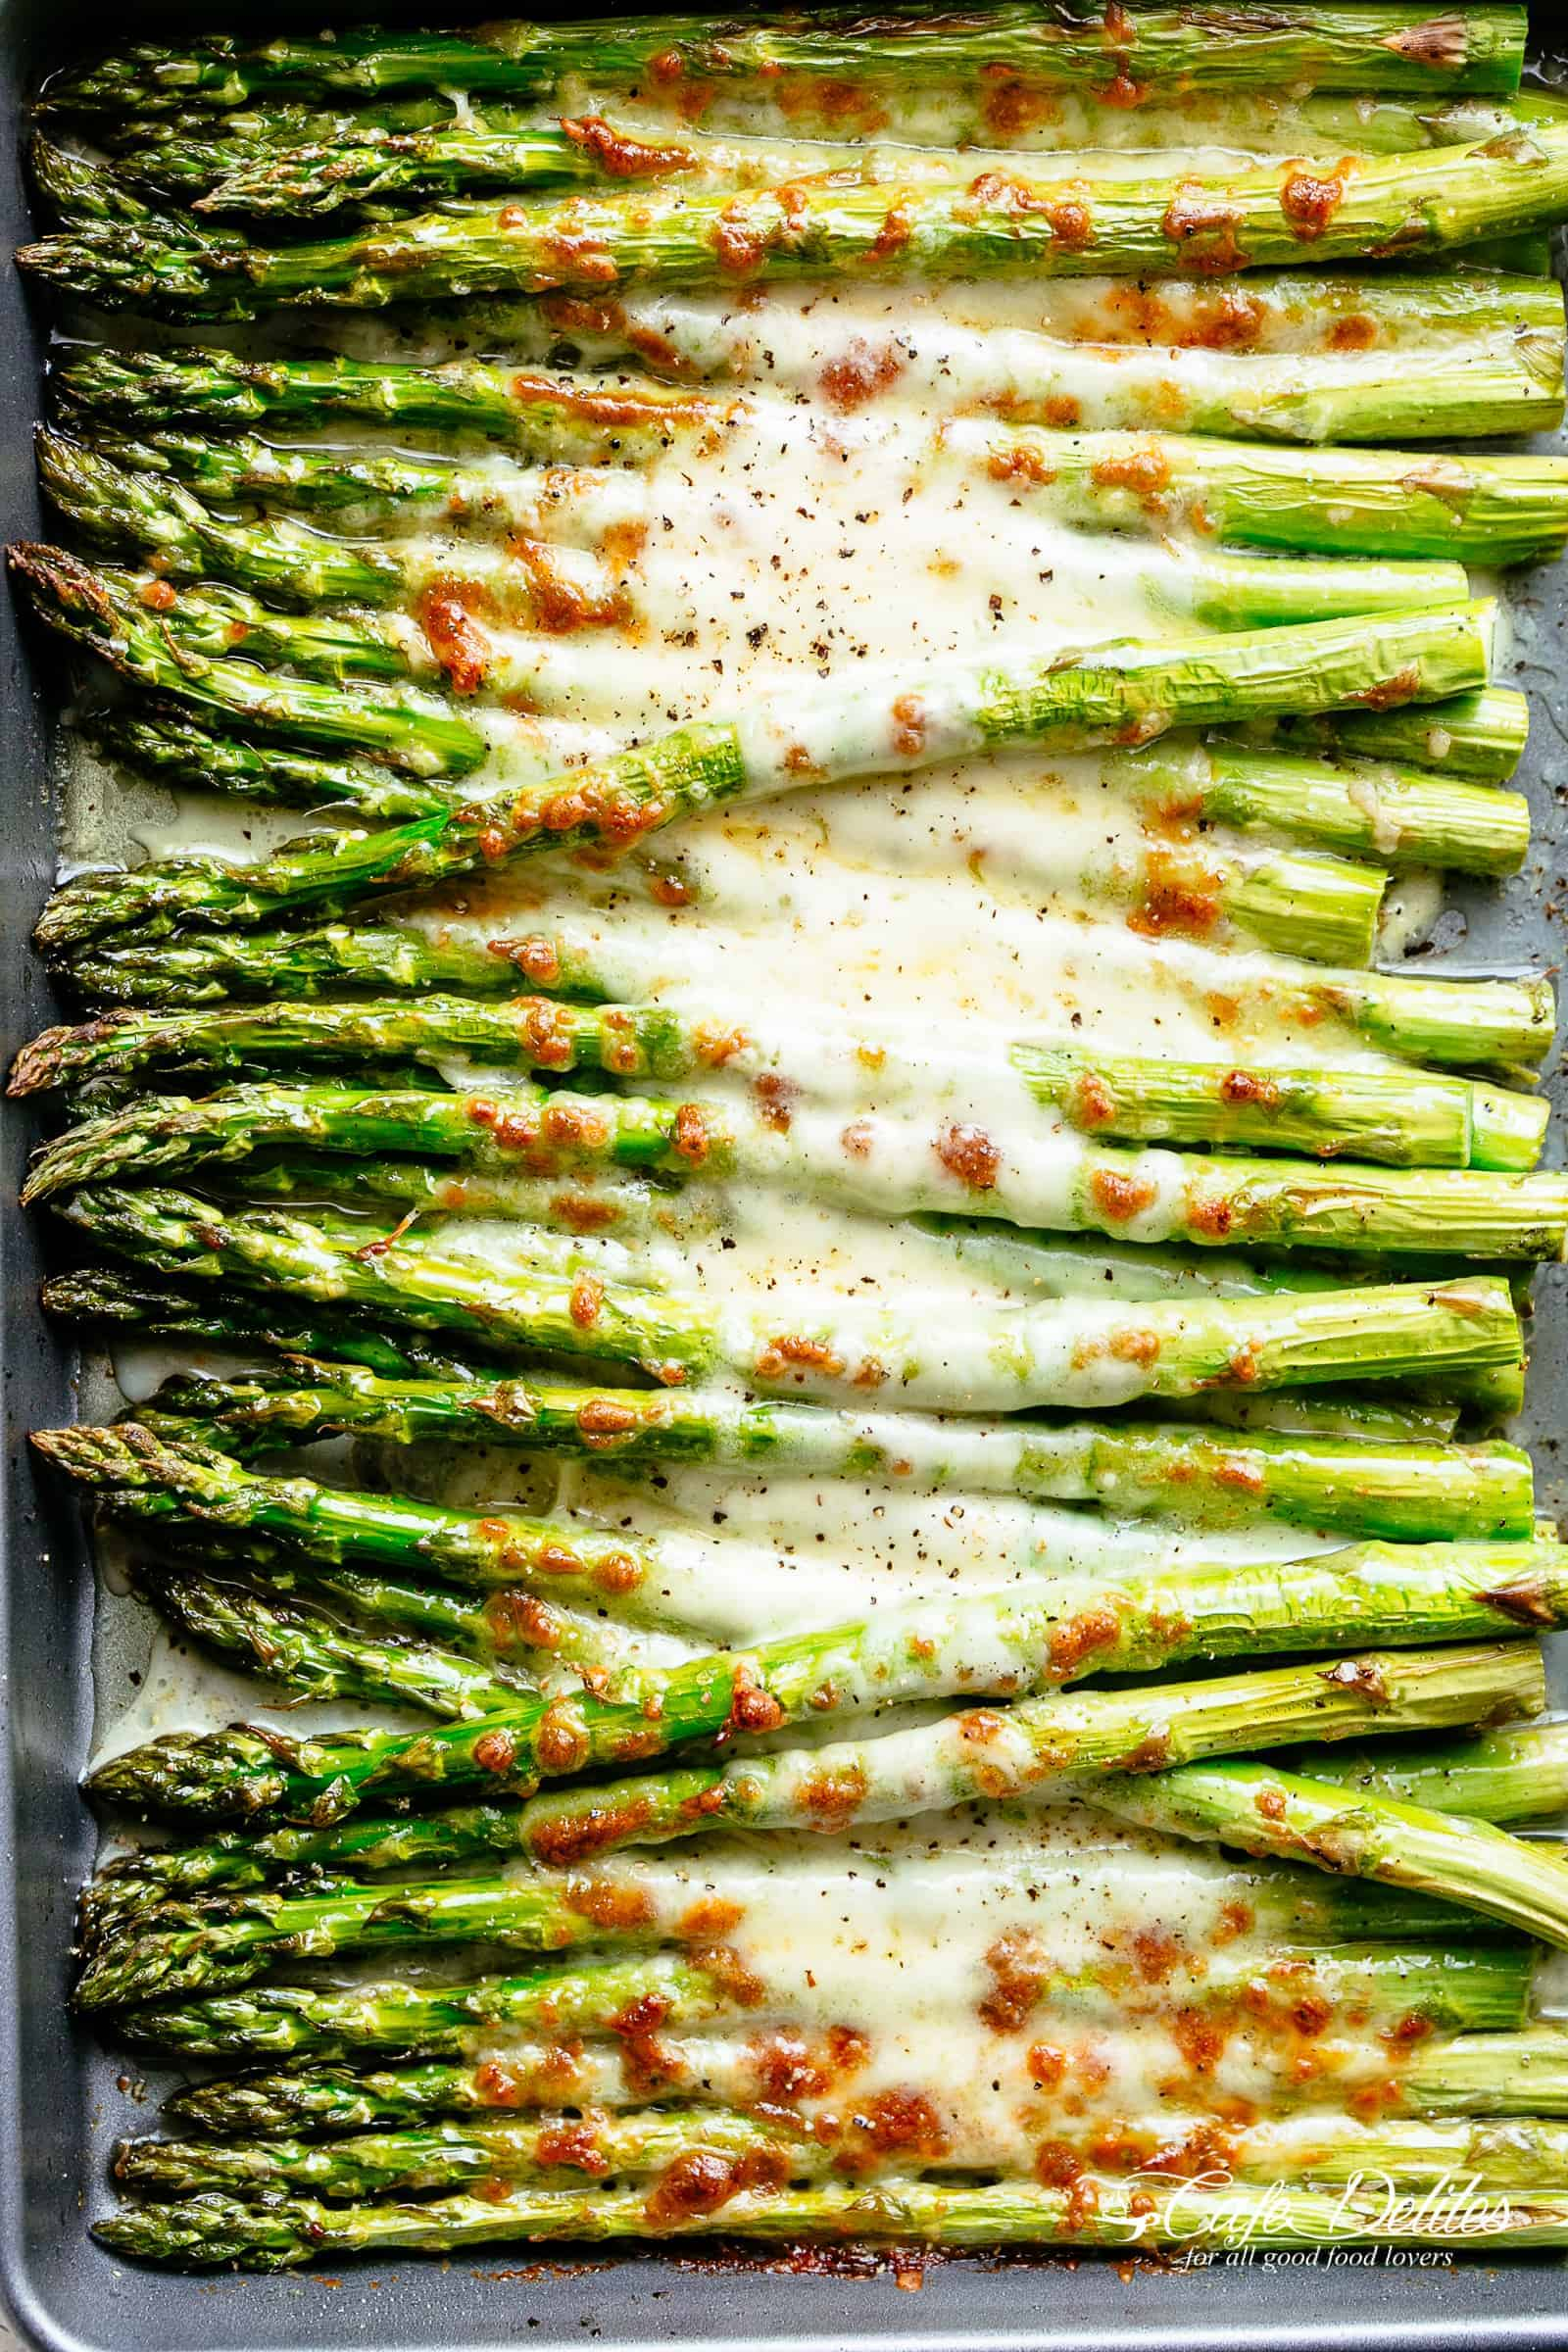 Cheesy Garlic Roasted Asparagus with mozzarella cheese is the best side dish to any meal! Low Carb, Keto AND the perfect way to get your veggies in! Even non-asparagus fans LOVE this recipe! Tastes so amazing that the whole family gets behind this asparagus recipe | cafedelites.com